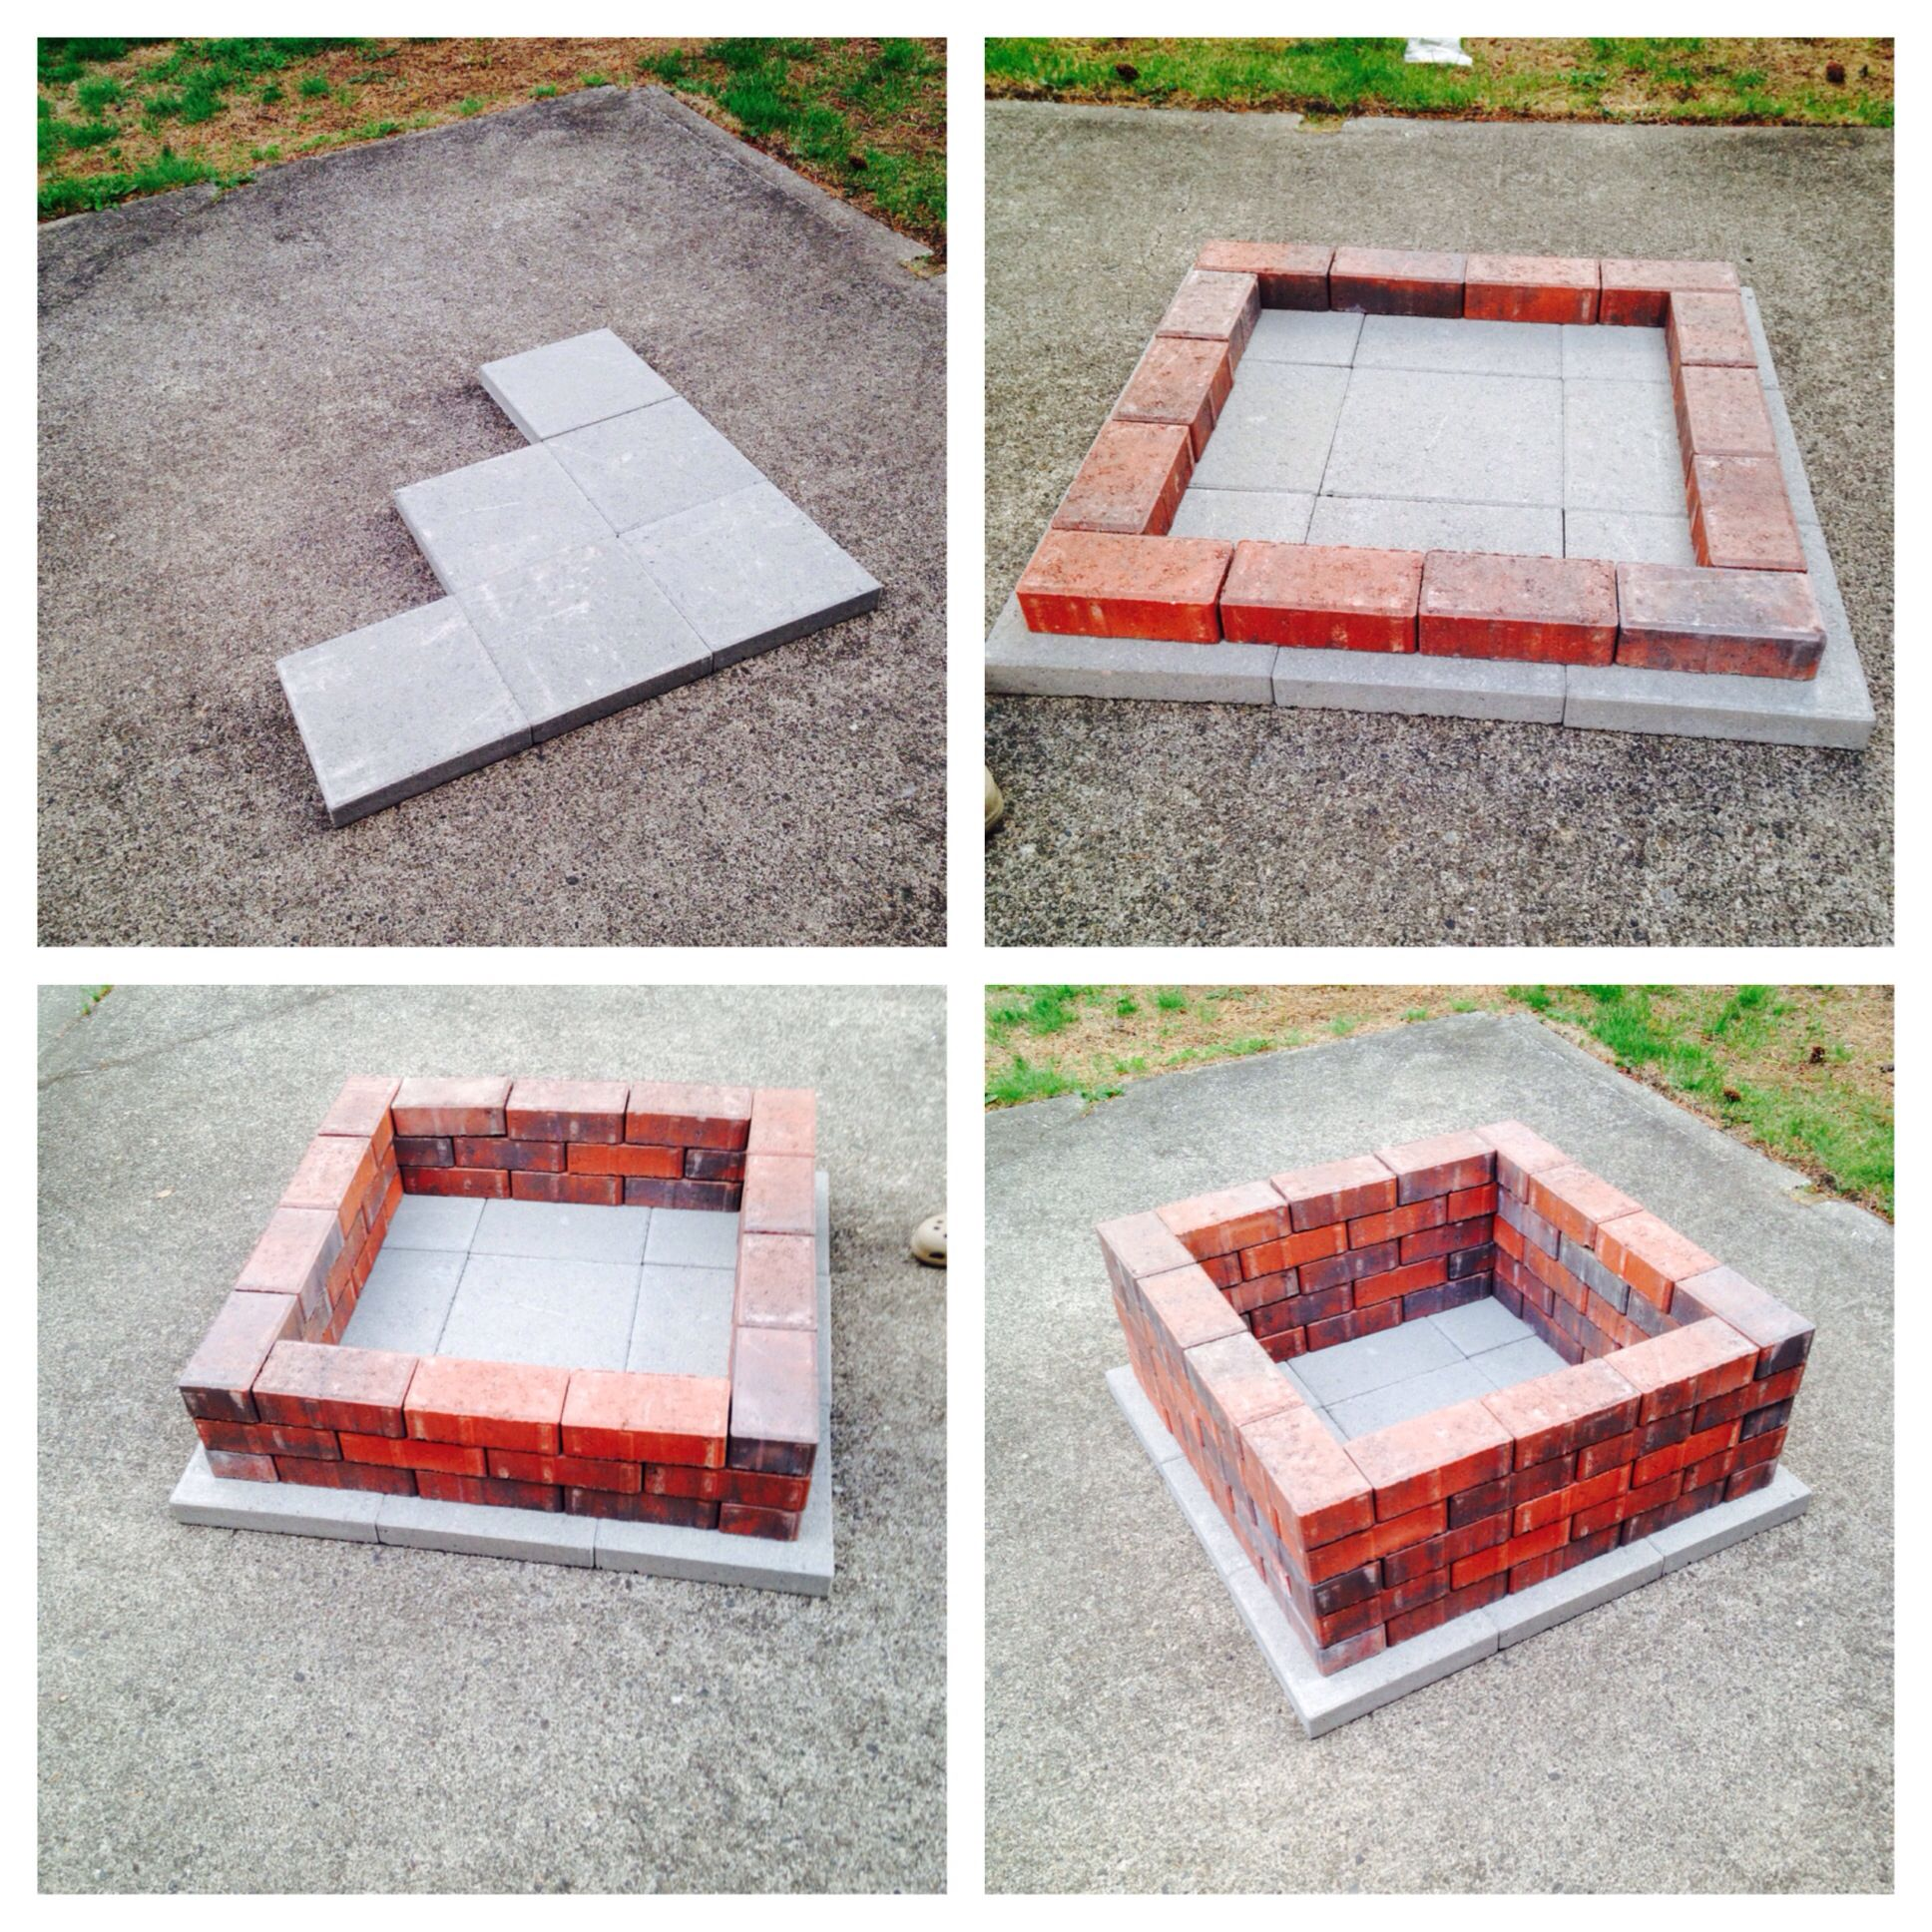 Diy Firepit 70 Regular Sized Bricks Stacked 5 High 9 Square Concrete Stepping Stones All Under 50 To Make Bou Brick Fire Pit Square Fire Pit Backyard Fire